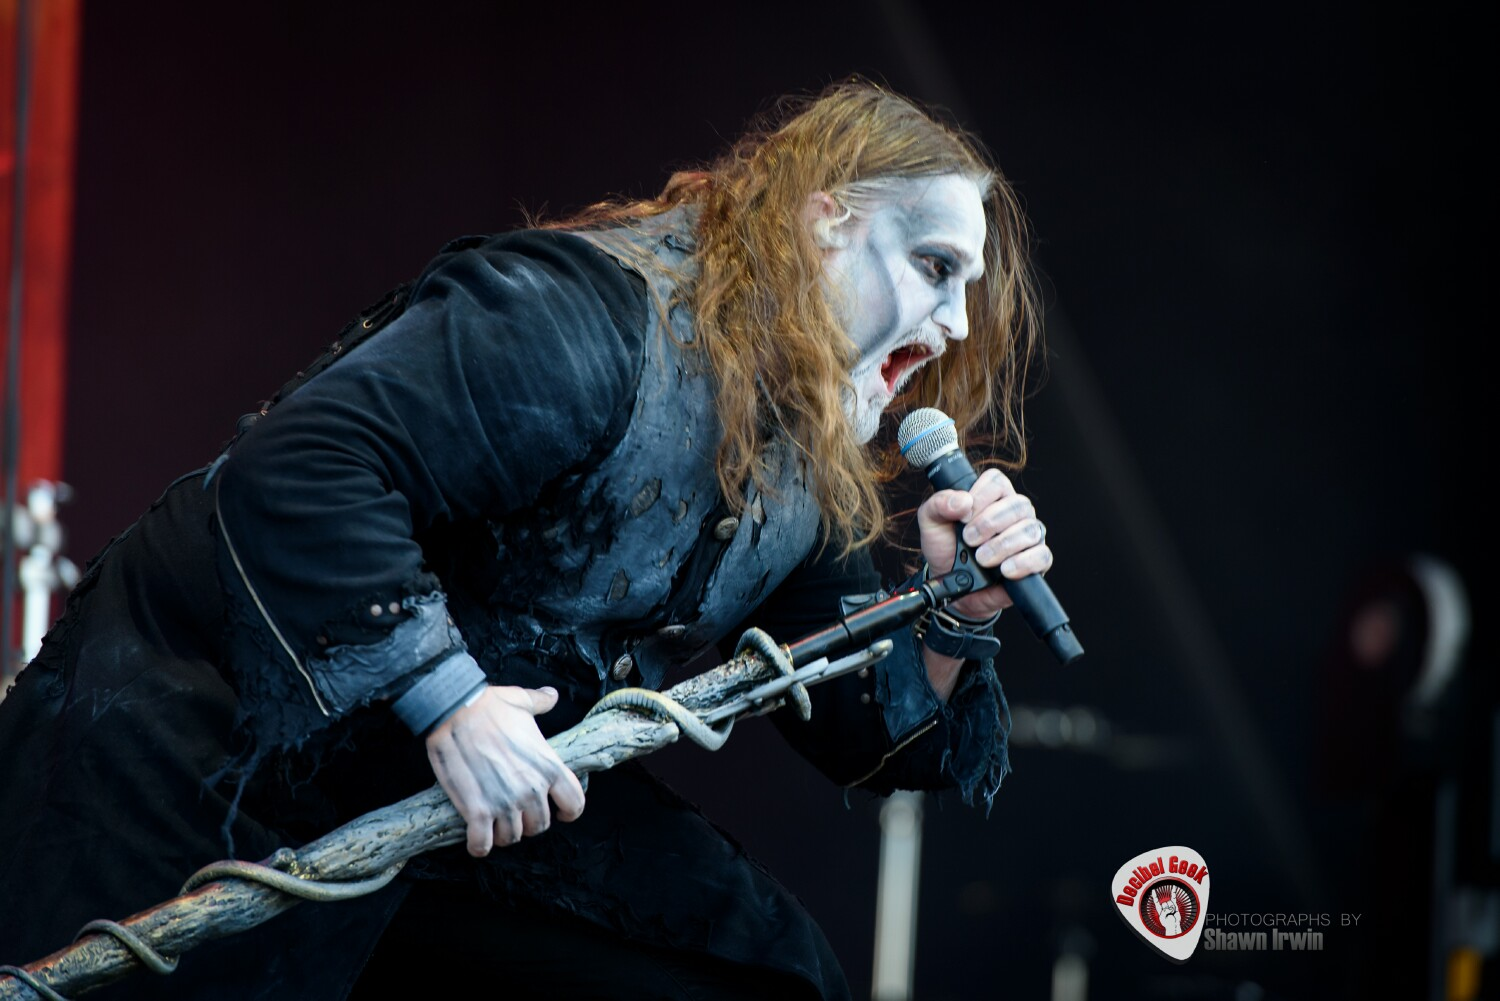 Powerwolf #18-SRF 2019-Shawn Irwin